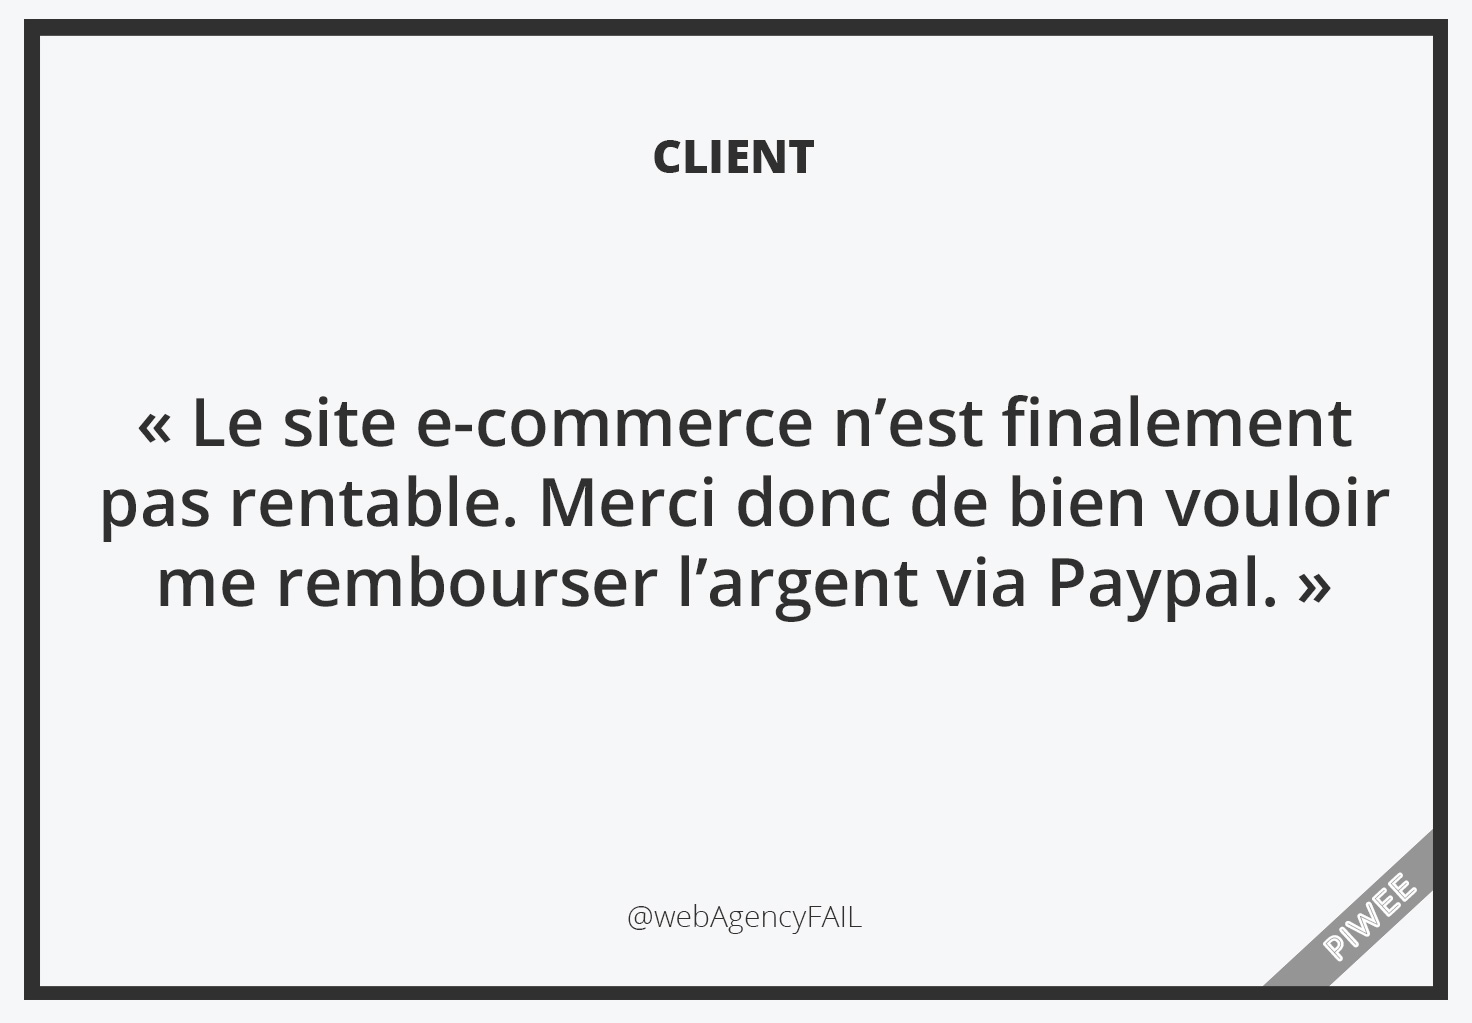 phrases-insolite-client-agence-web-1